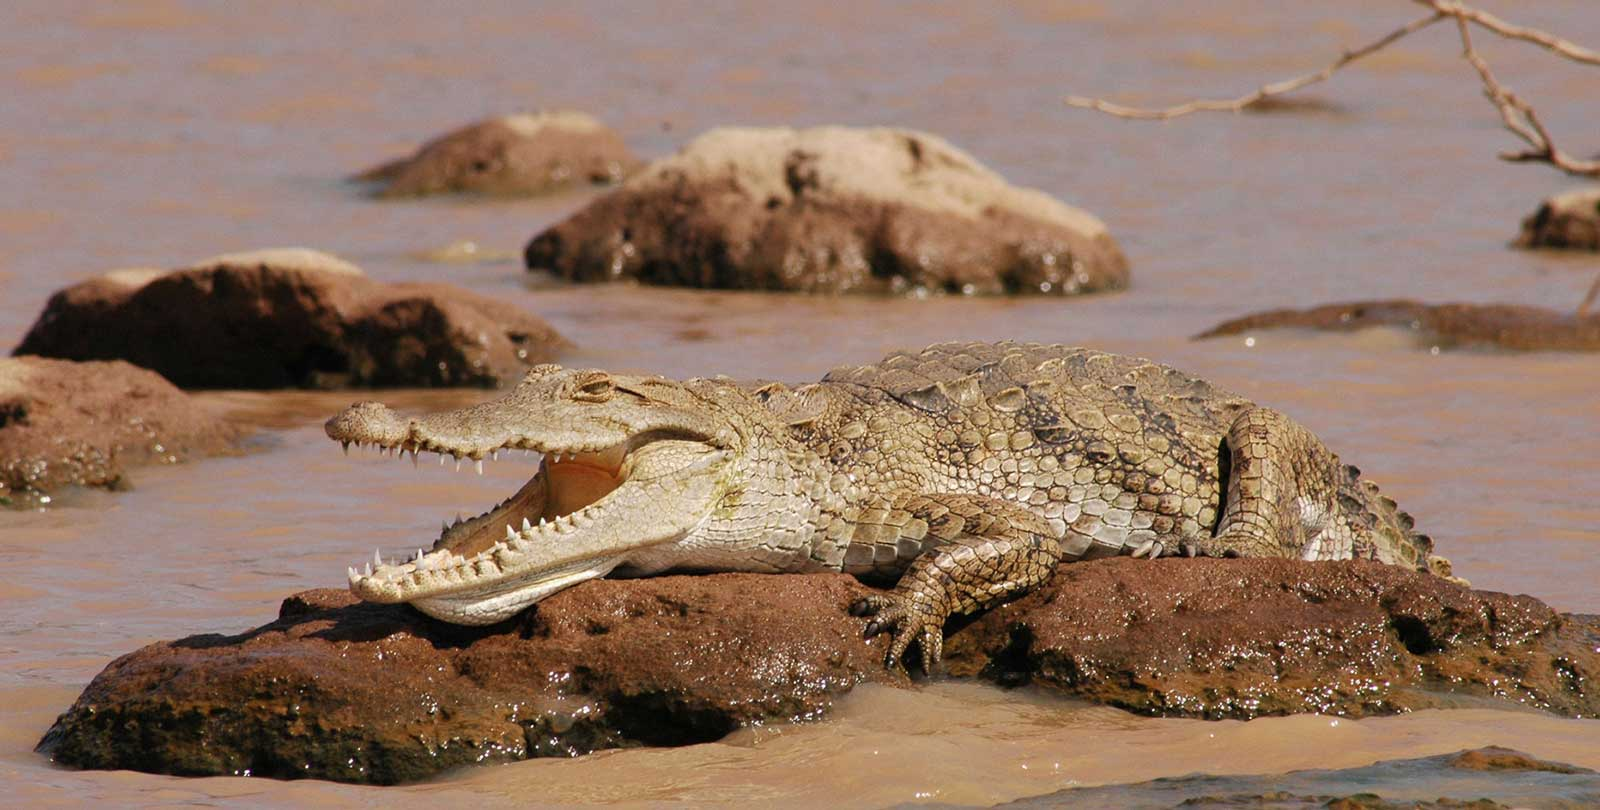 Crocodiles on Safari